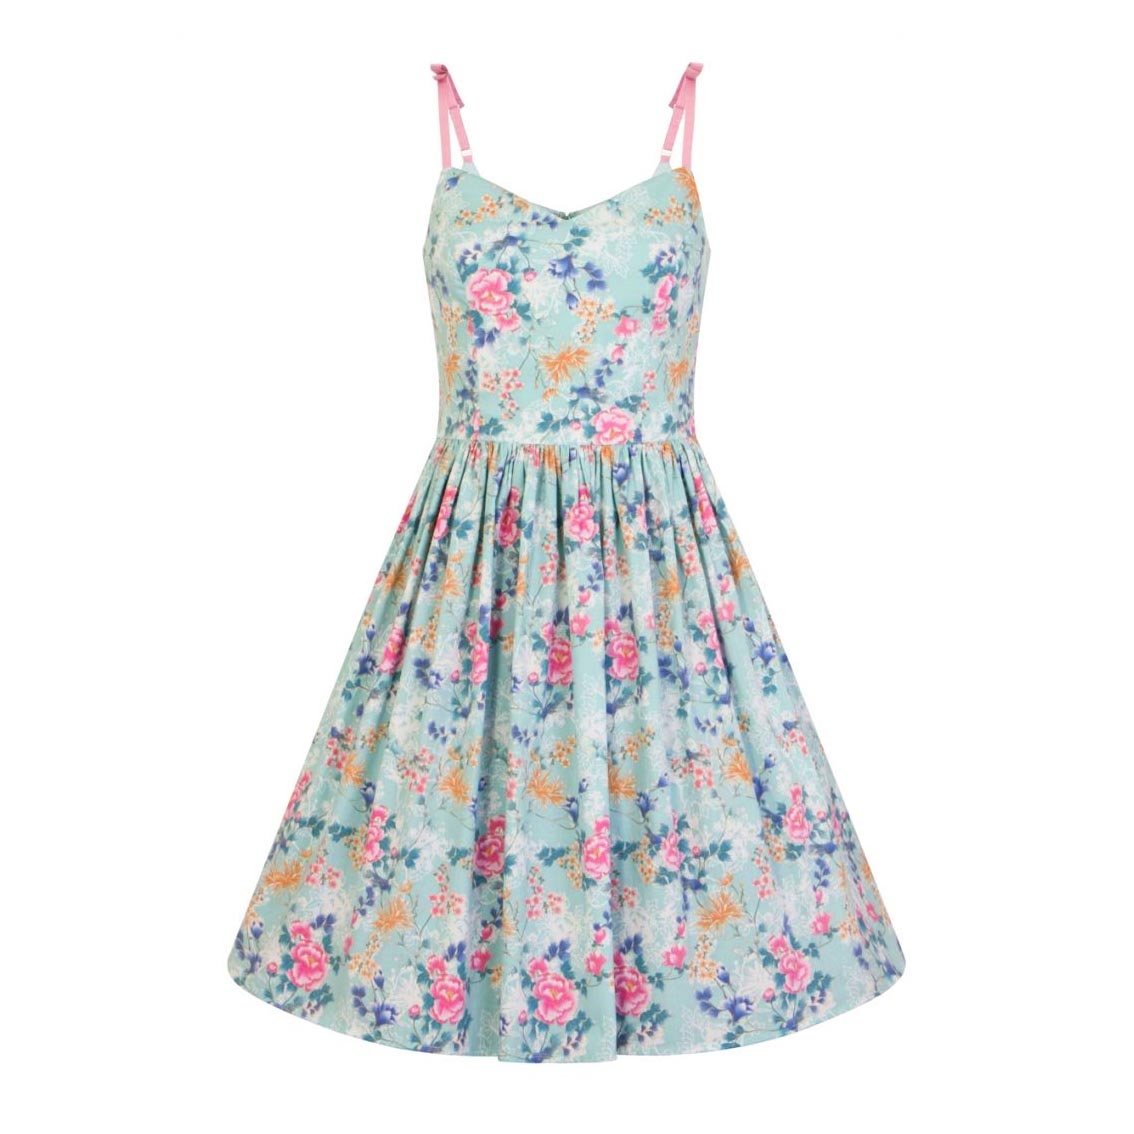 Hell-Bunny-50s-Mid-Length-Dress-Vintage-Blue-Pink-SAKURA-Flowers-Roses-All-Sizes thumbnail 8